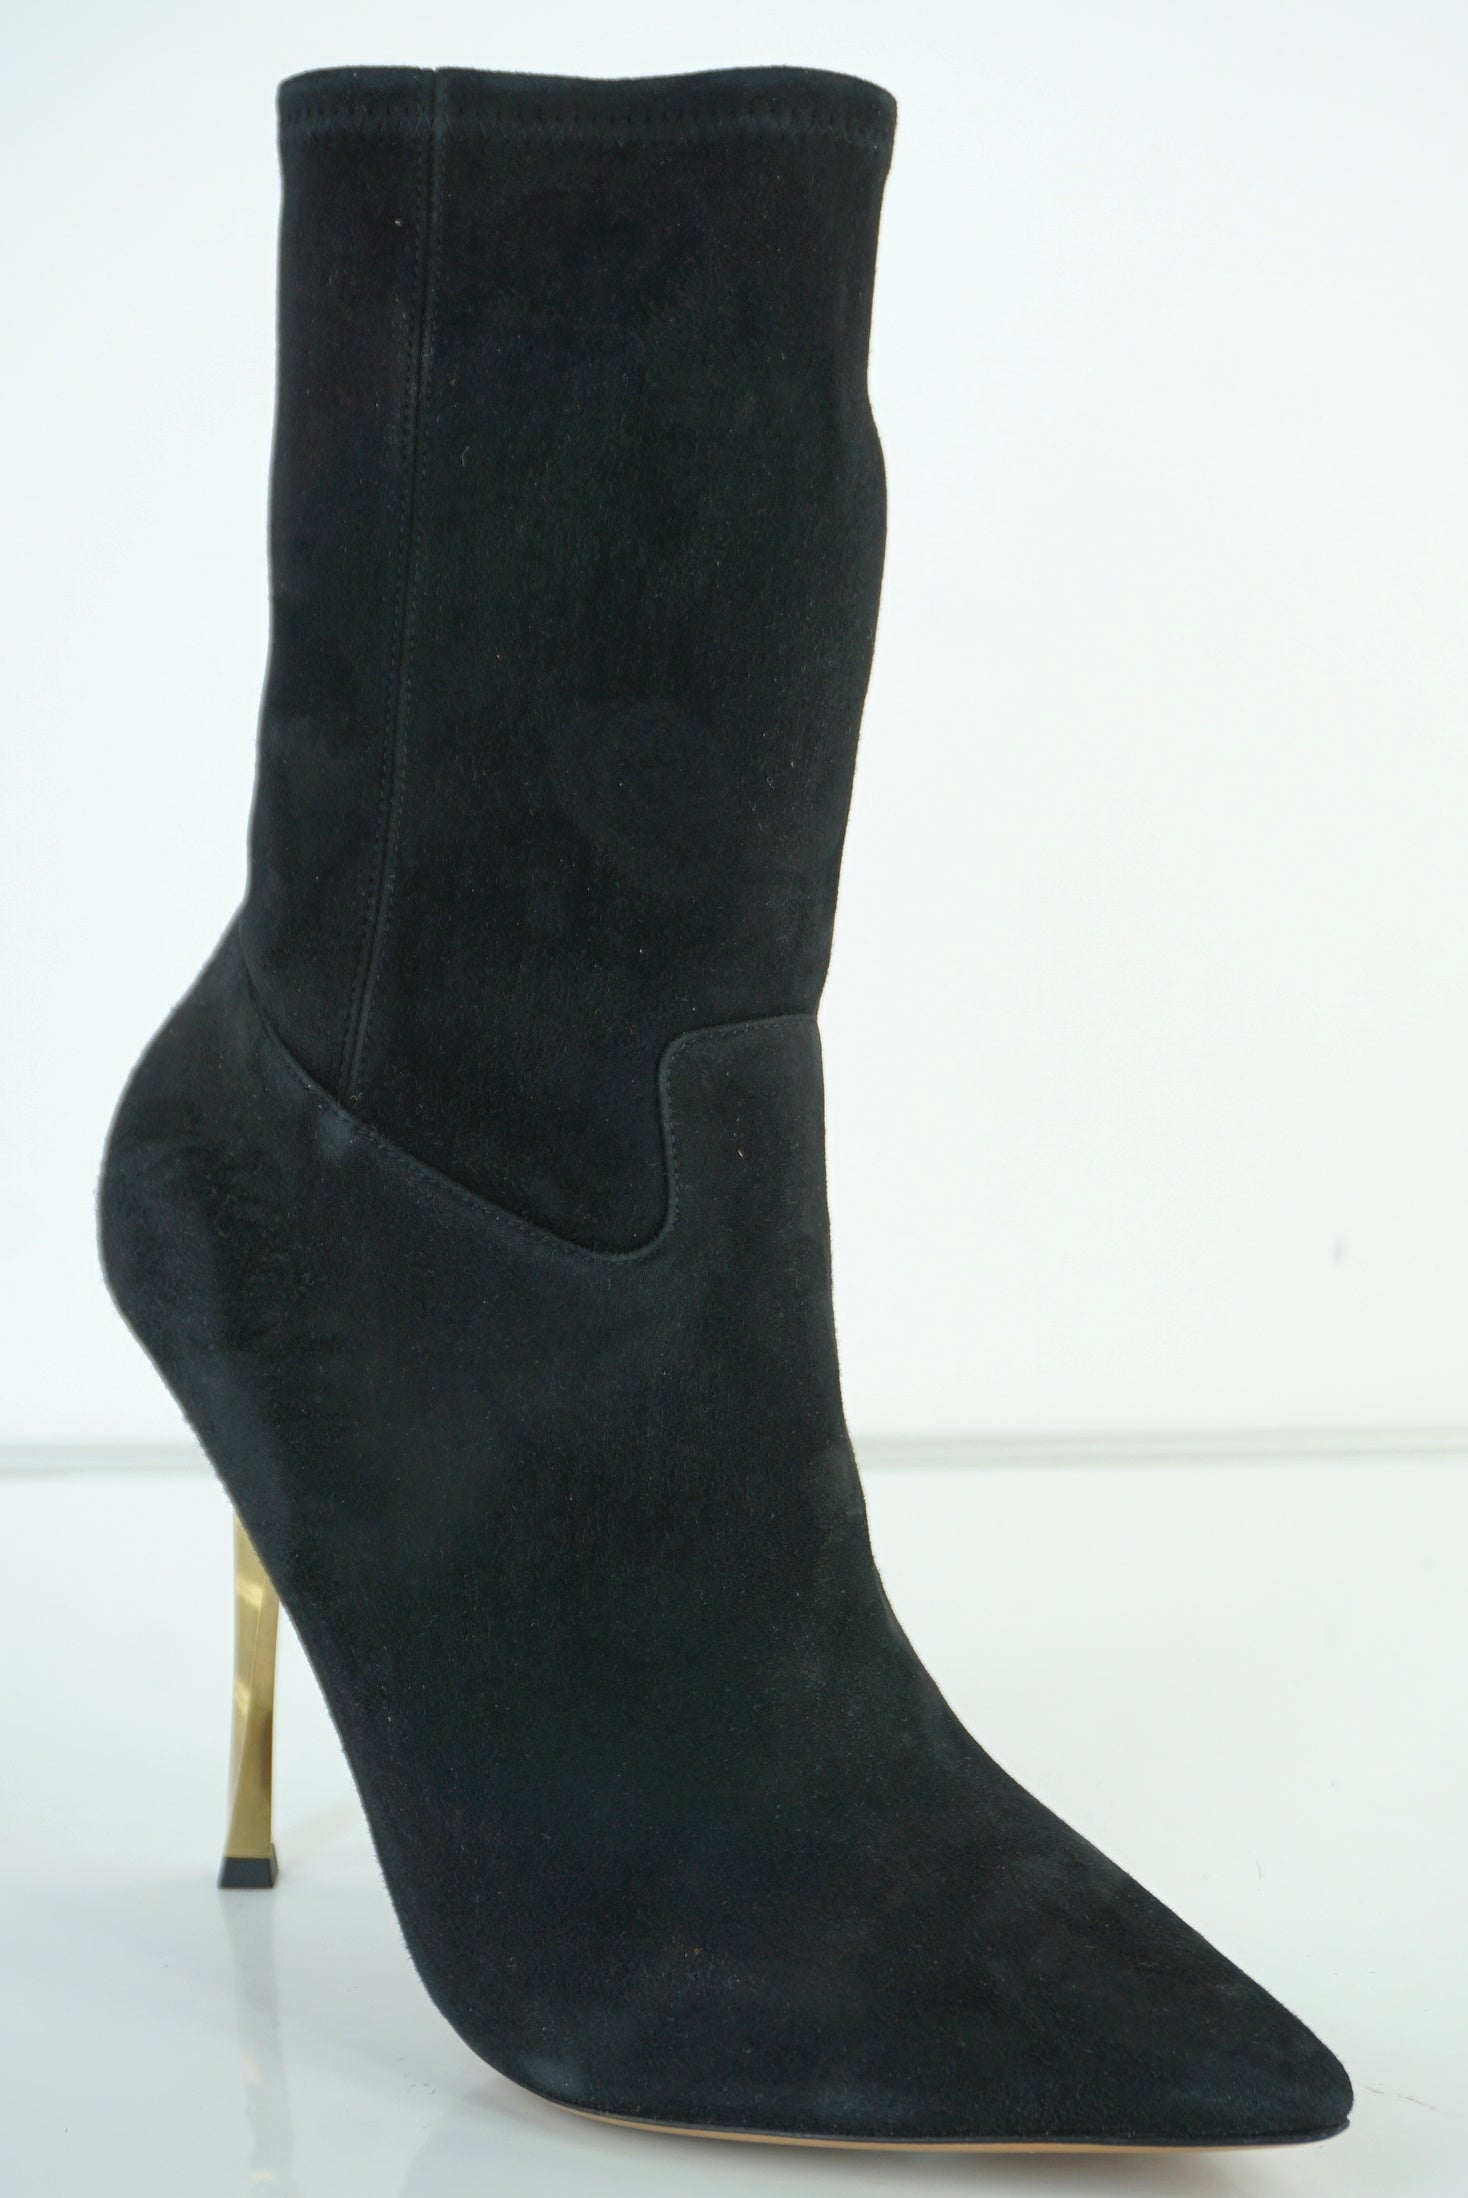 NIB Valentino Black Suede 'Twisteel' Stiletto Pointy Toe Bootie Size 39 $1445